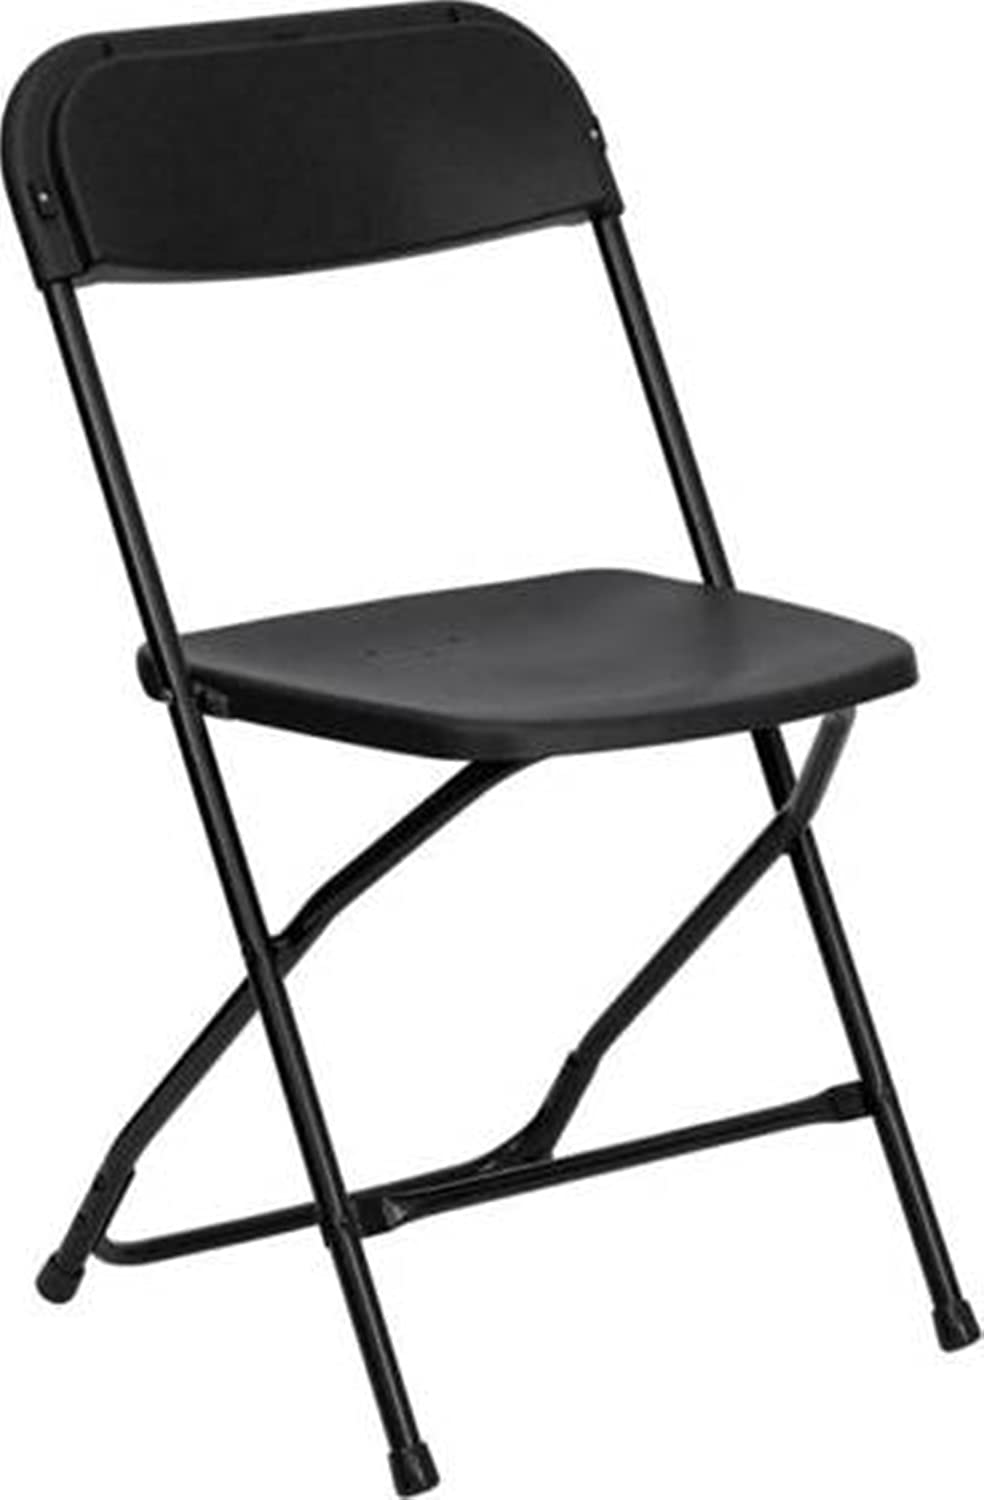 Admirable Amazon Com New Sudden Comfort Folding Chair Capacity Black Pabps2019 Chair Design Images Pabps2019Com